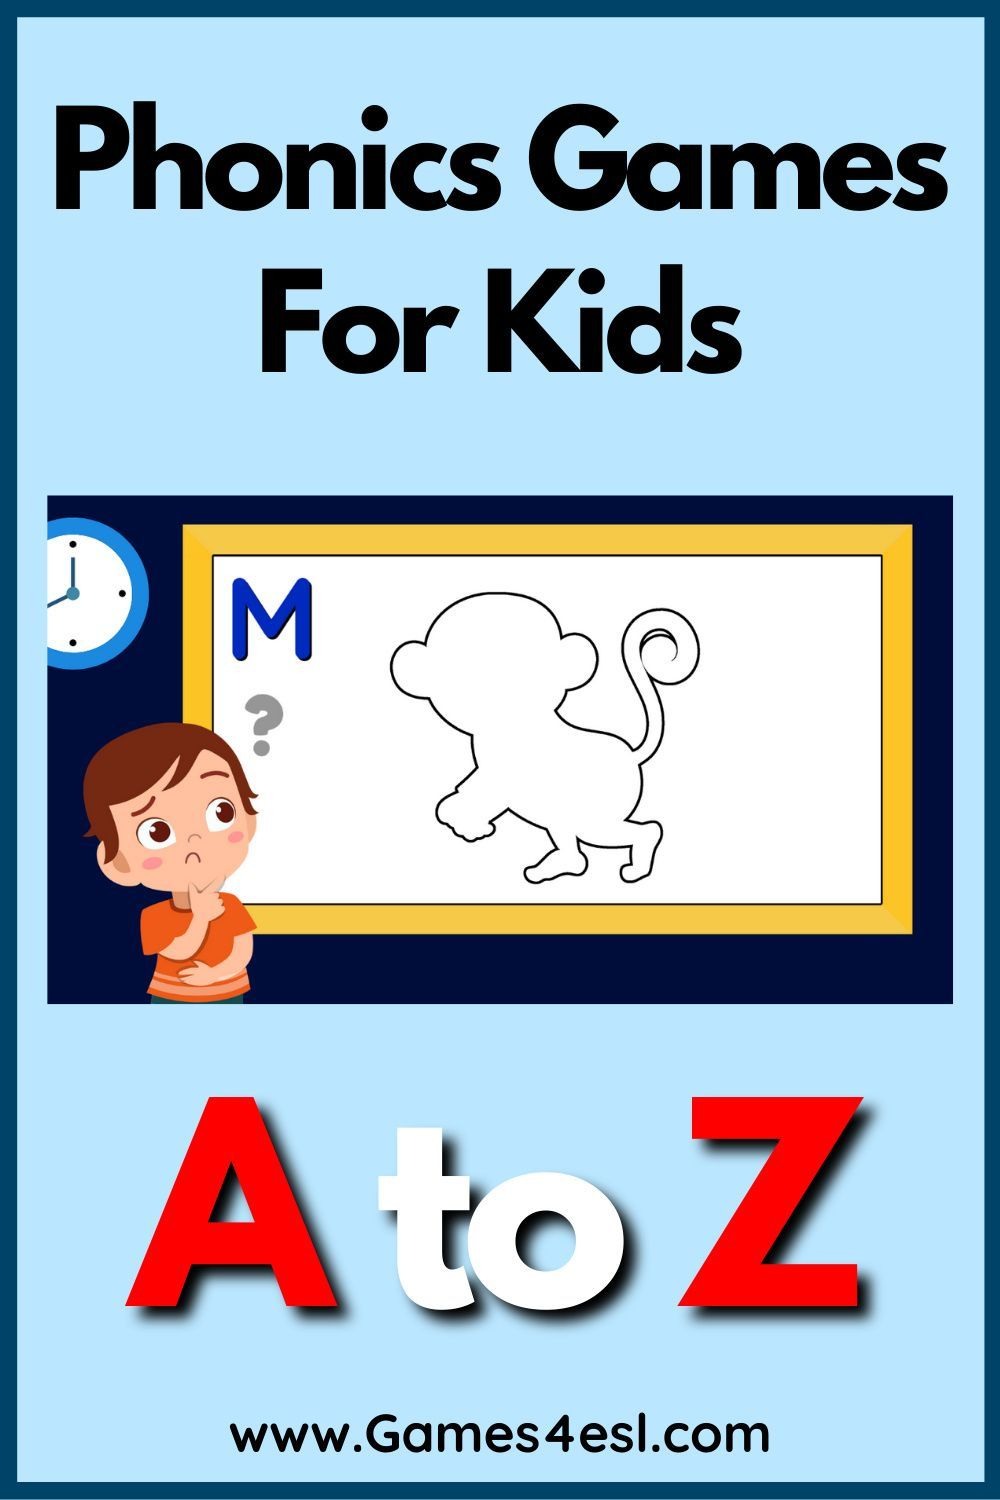 Phonics Games For Kids A To Z Phonics Games For Kids Phonics Games Phonics